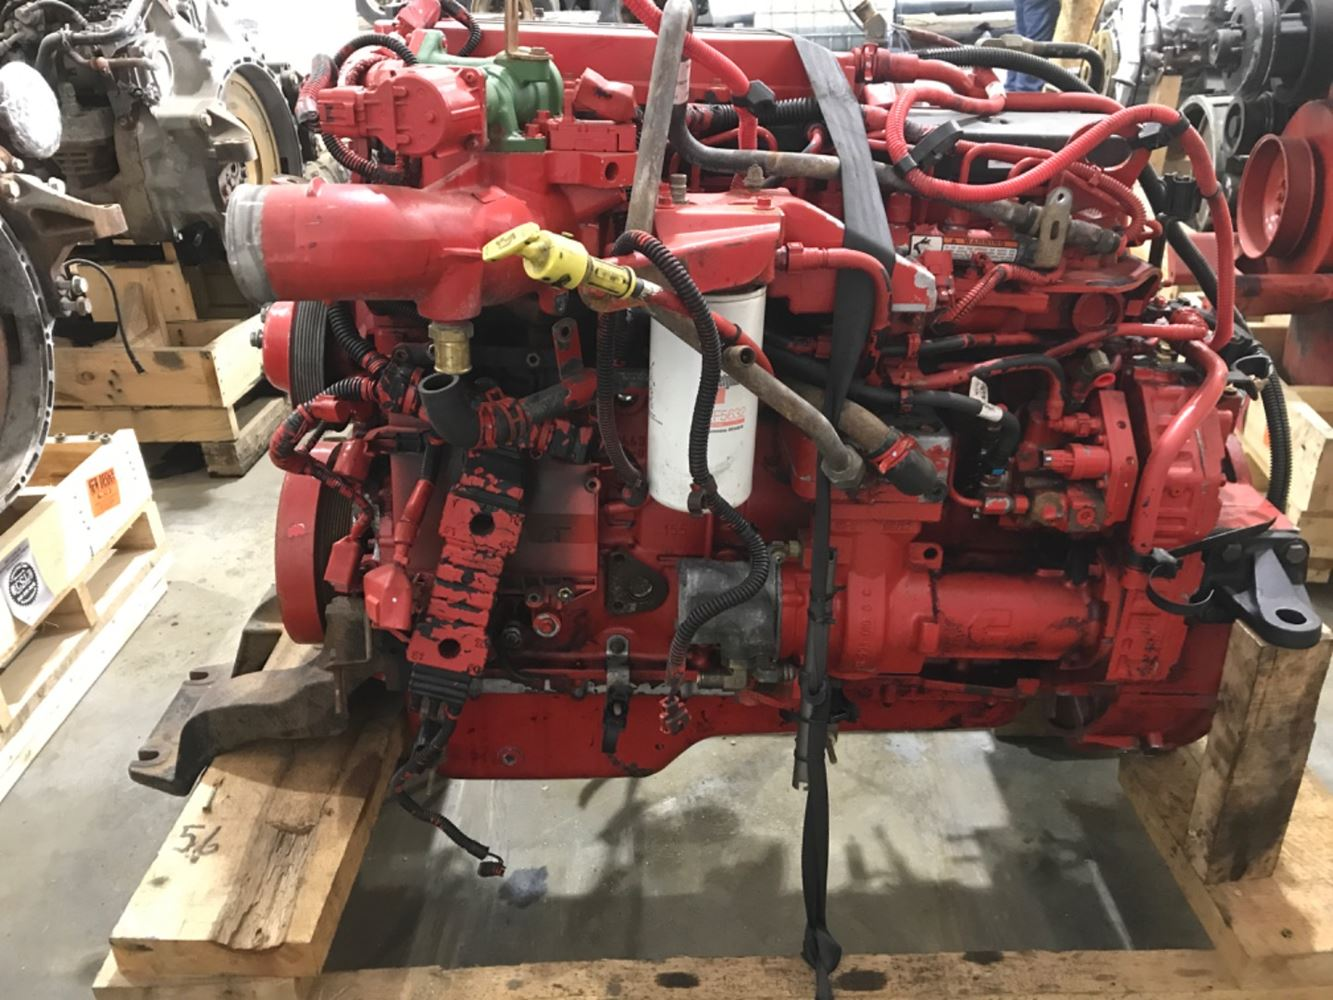 2013 CUMMINS ISB 260 ENGINE ASSEMBLY TRUCK PARTS #694341